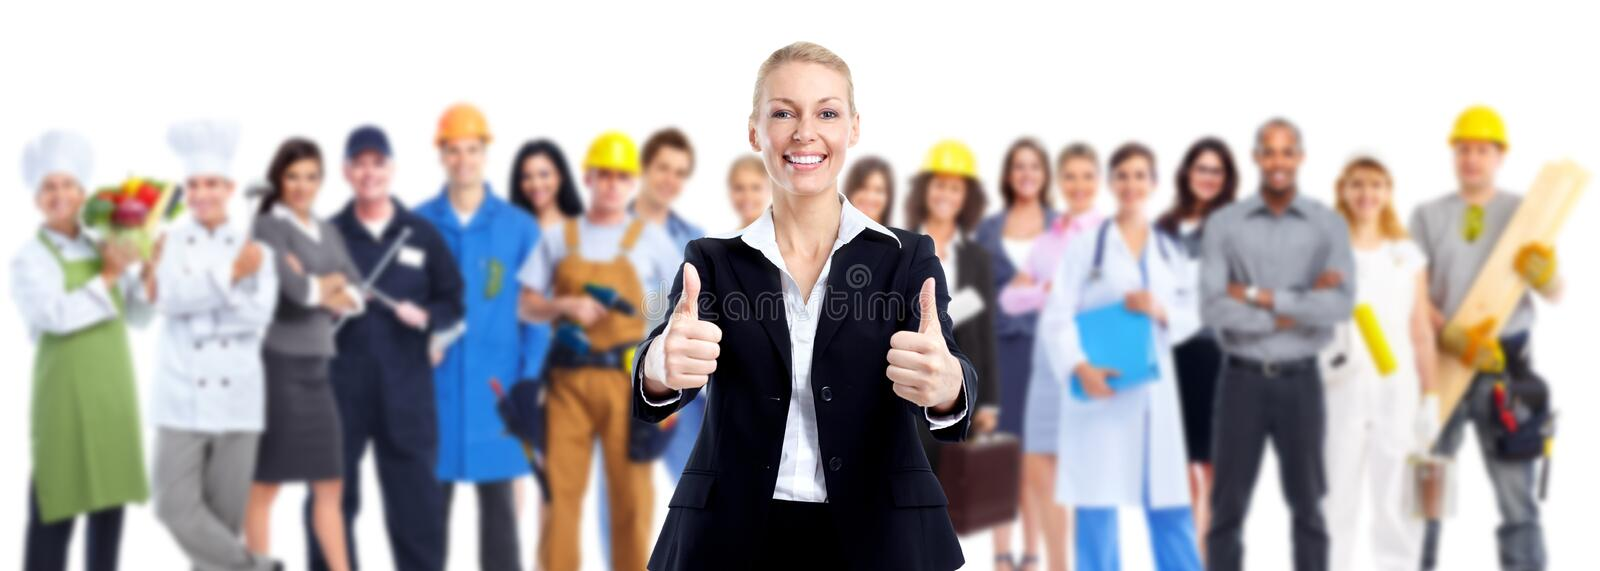 Group of workers people. Group of workers people isolated over white background stock images